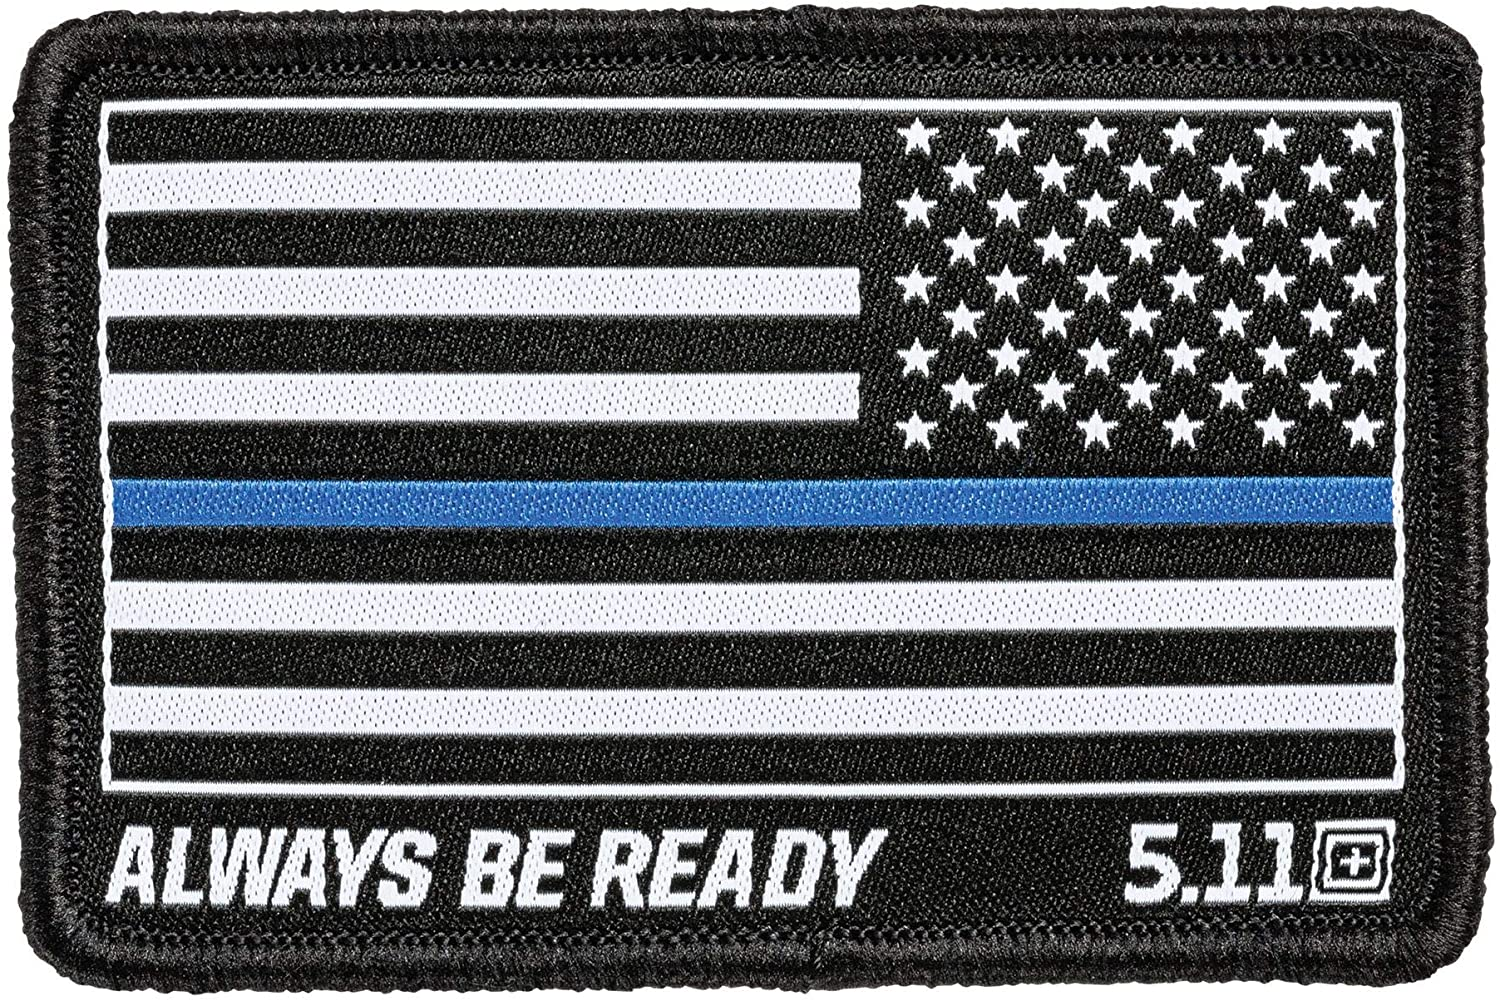 5.11 Tactical Thin Blue Line Reverse Woven Patch, Hook-Back Adhesion, Morale Fabric Badge, Black, Style 81299